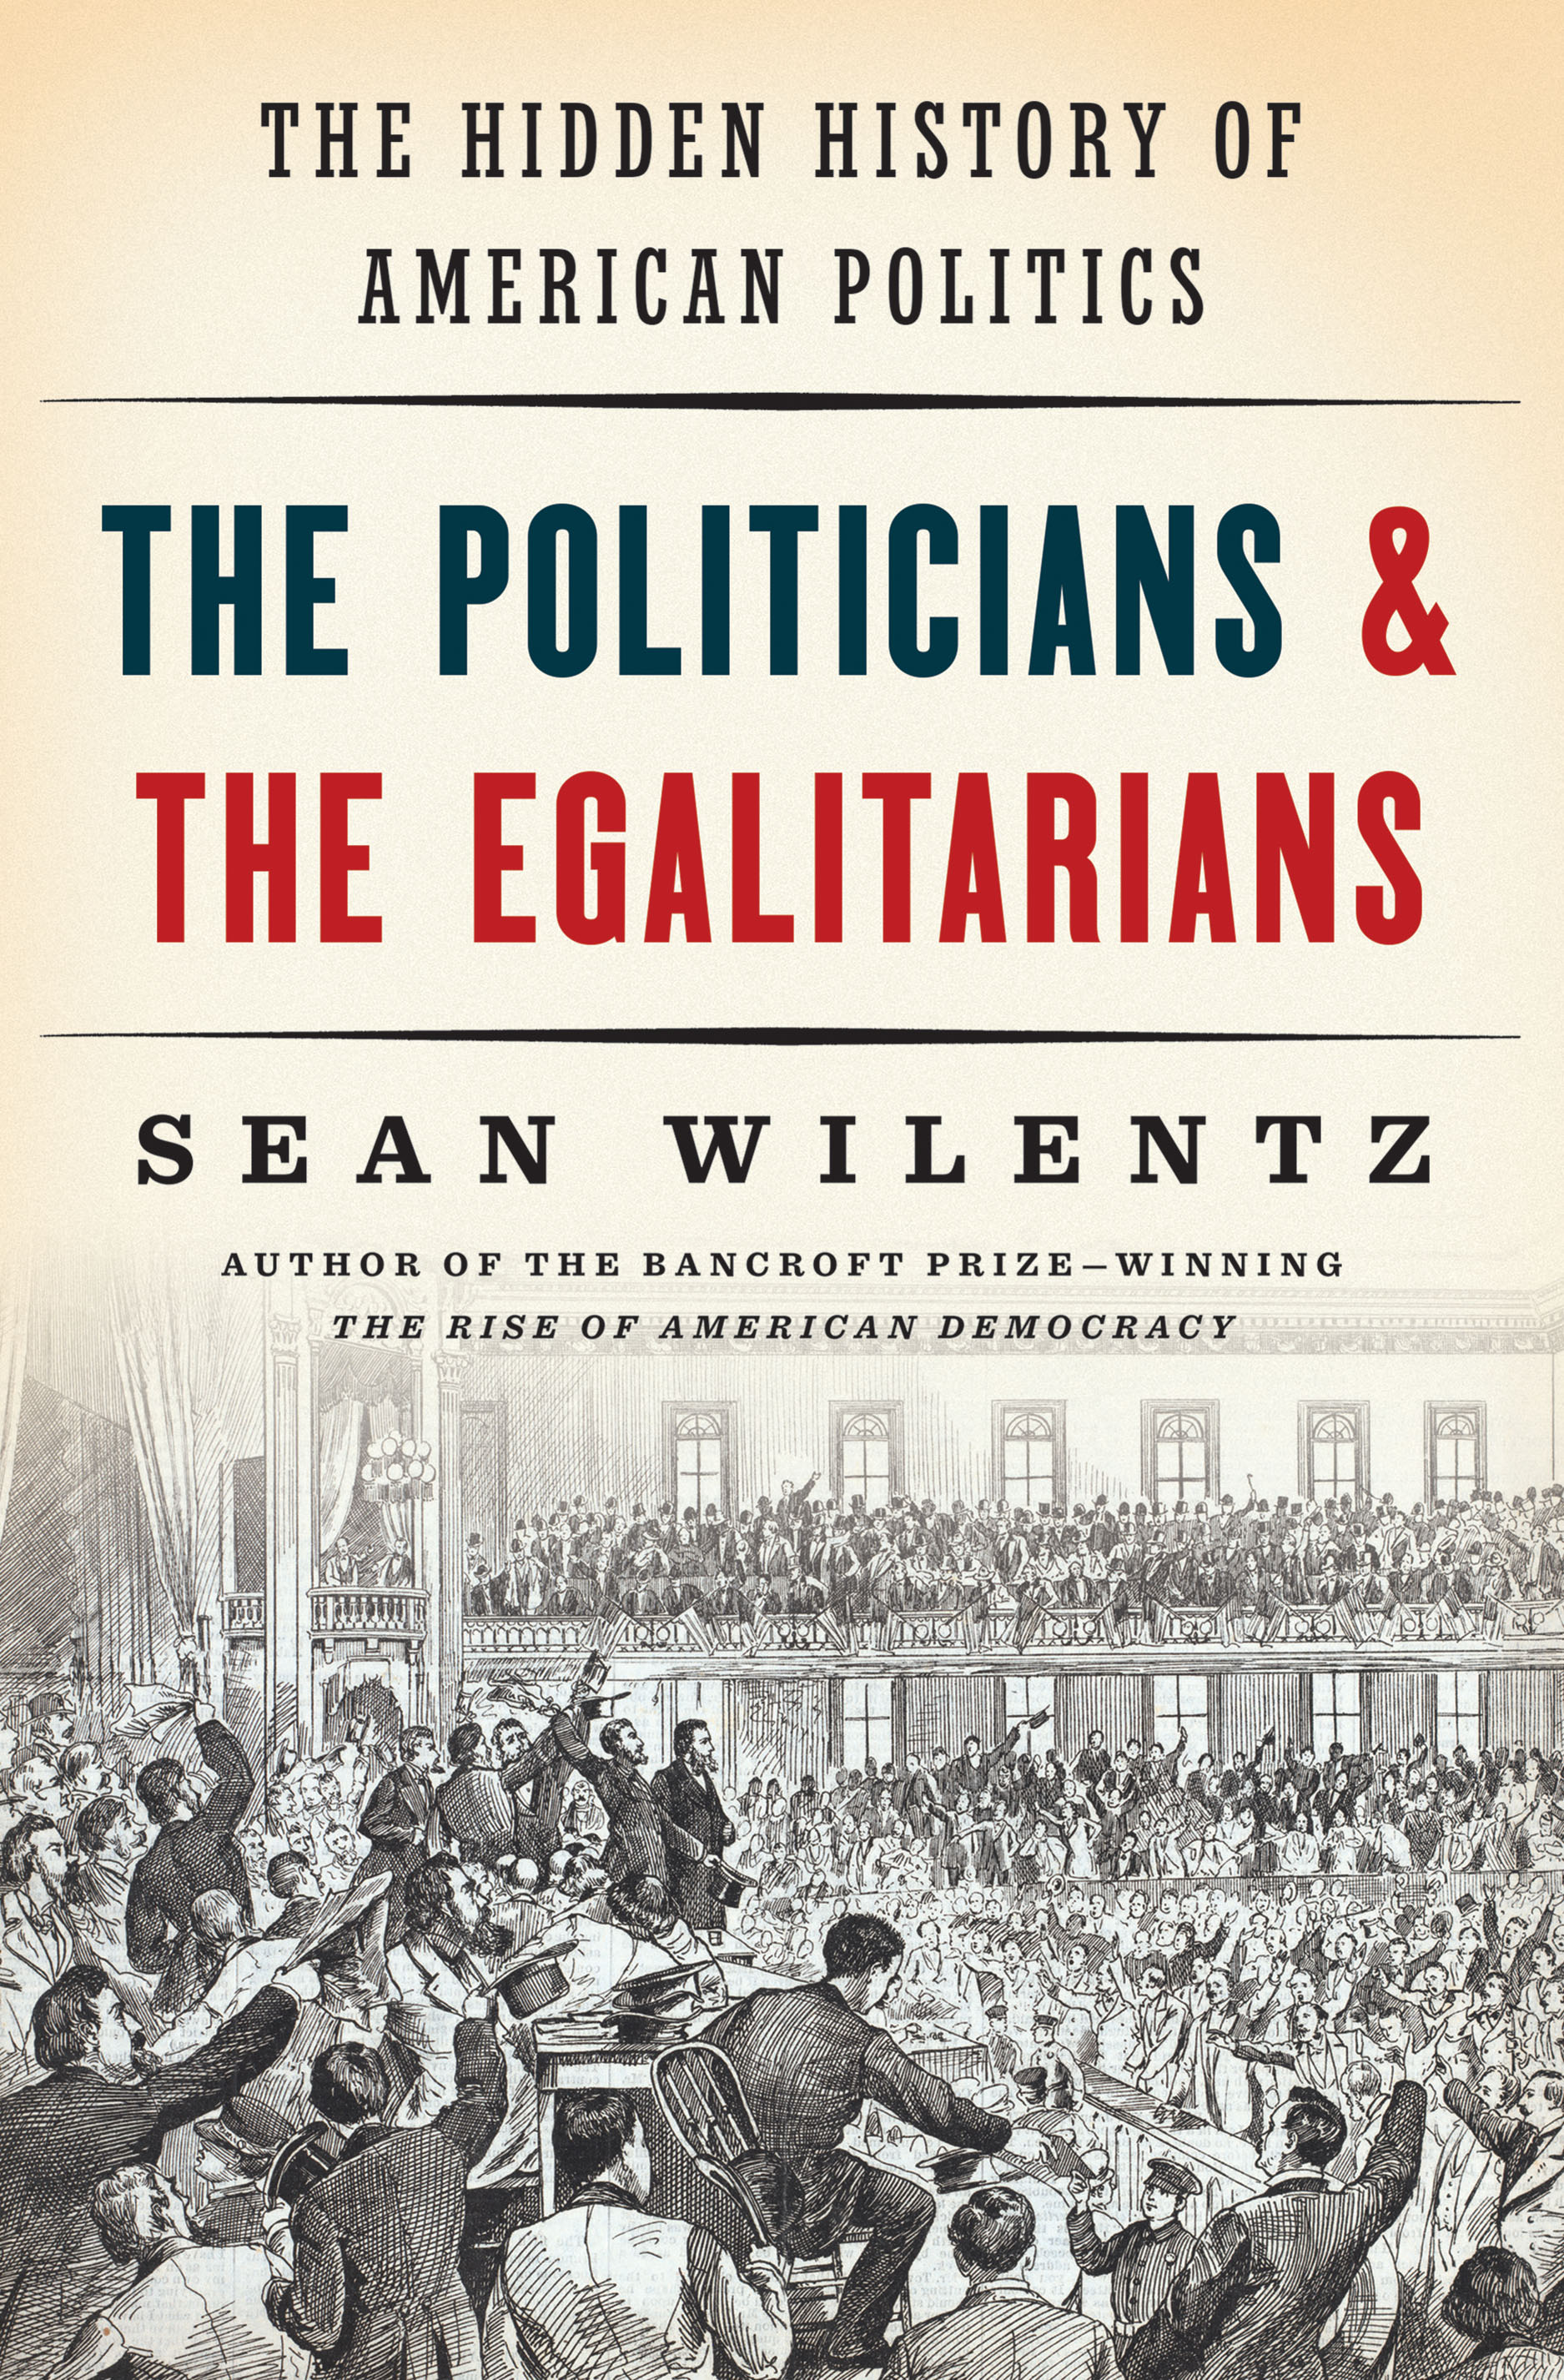 REVIEW: Fed Up With Politicians? A Leading Historian Explains Why